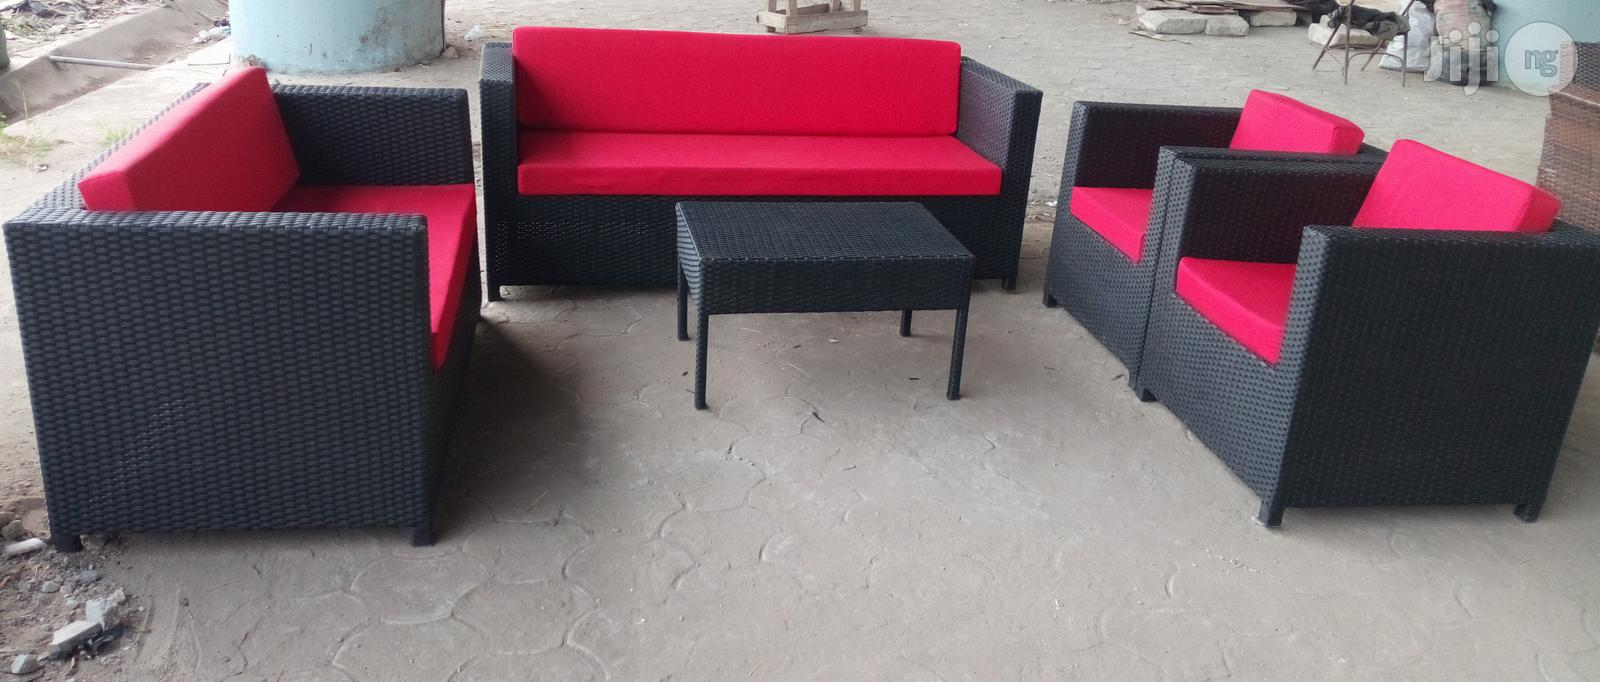 Archive: High Quality 7 Seater Out Door or Living Room Cane Chair